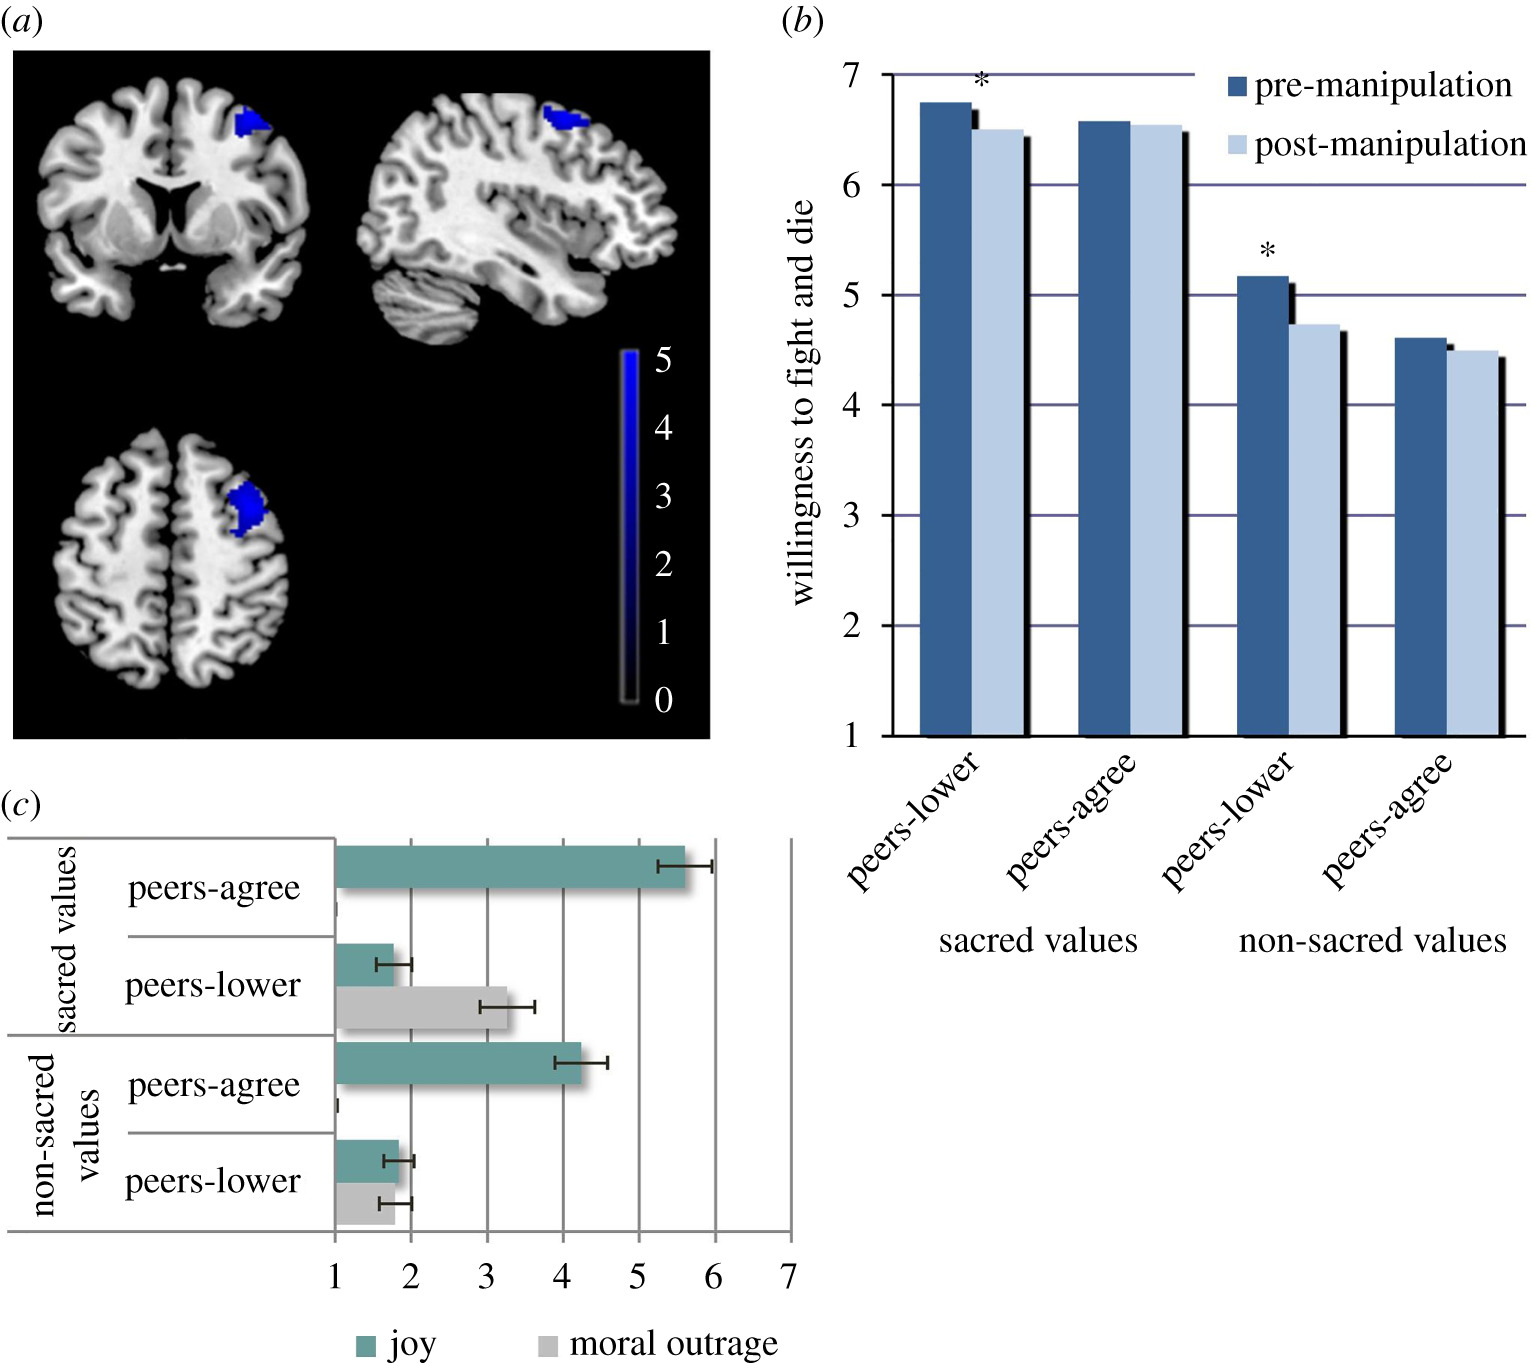 Neuroimaging 'will to fight' for sacred values: an empirical